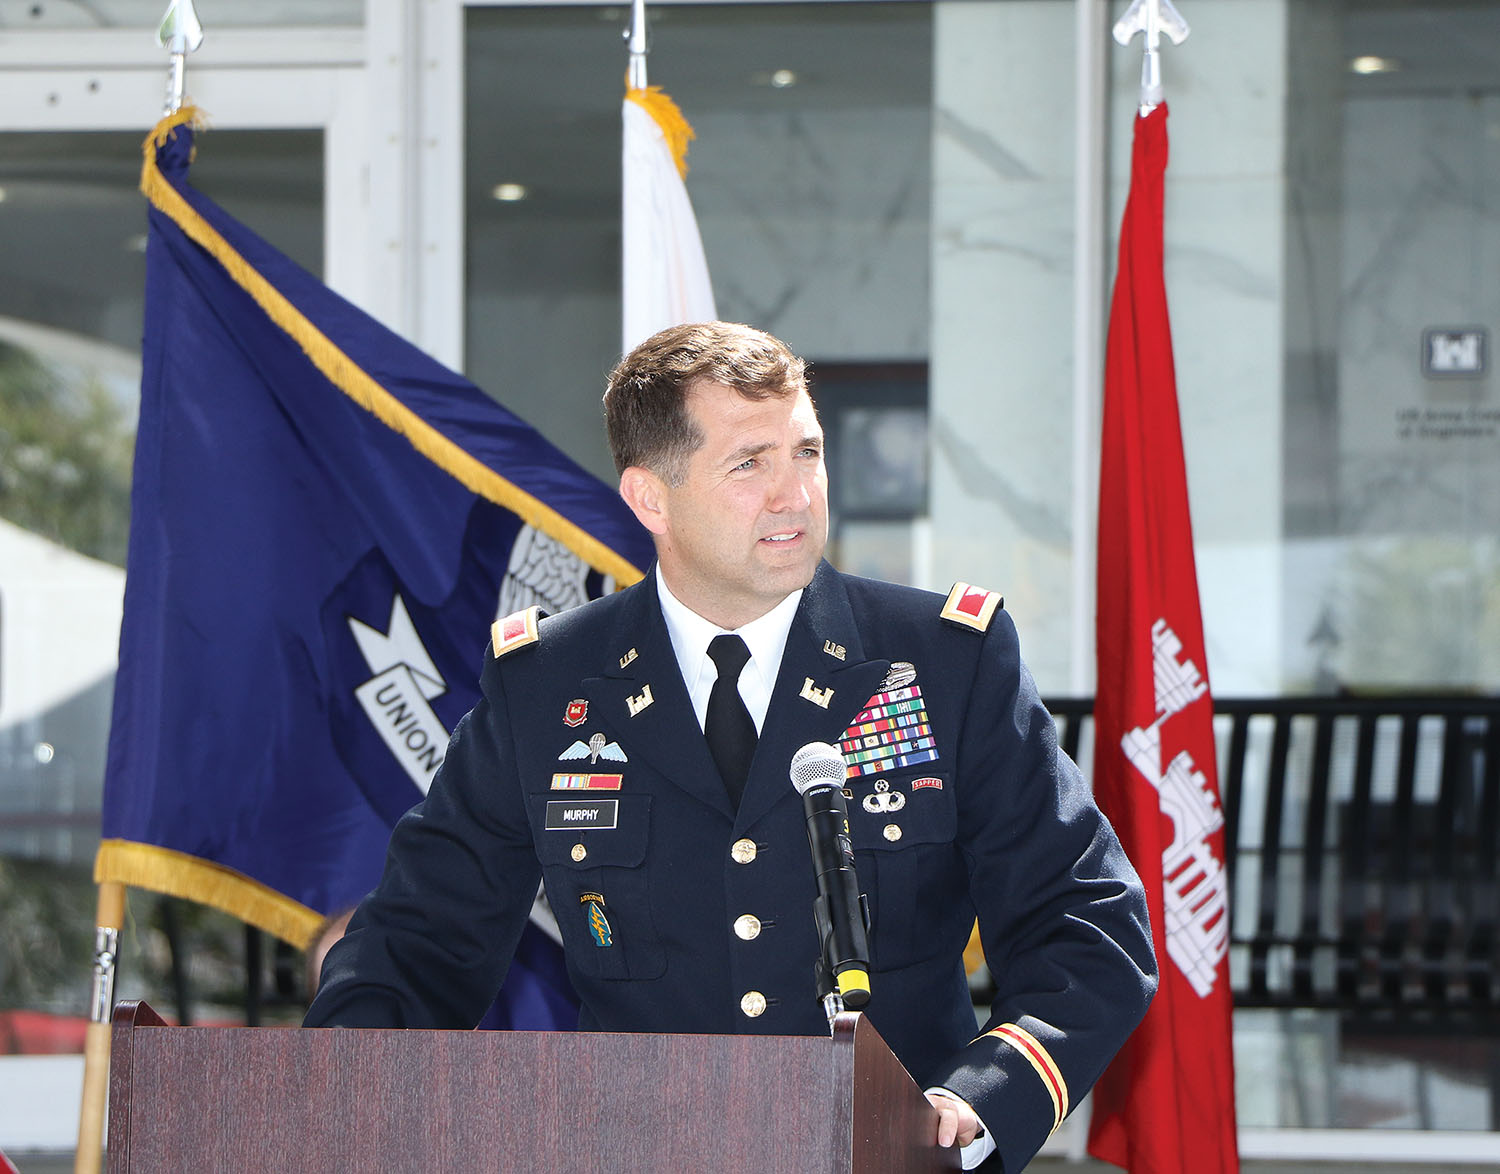 Col. Stephen Murphy speaks at change of command ceremony. (Photo courtesy of New Orleans Engineer District)